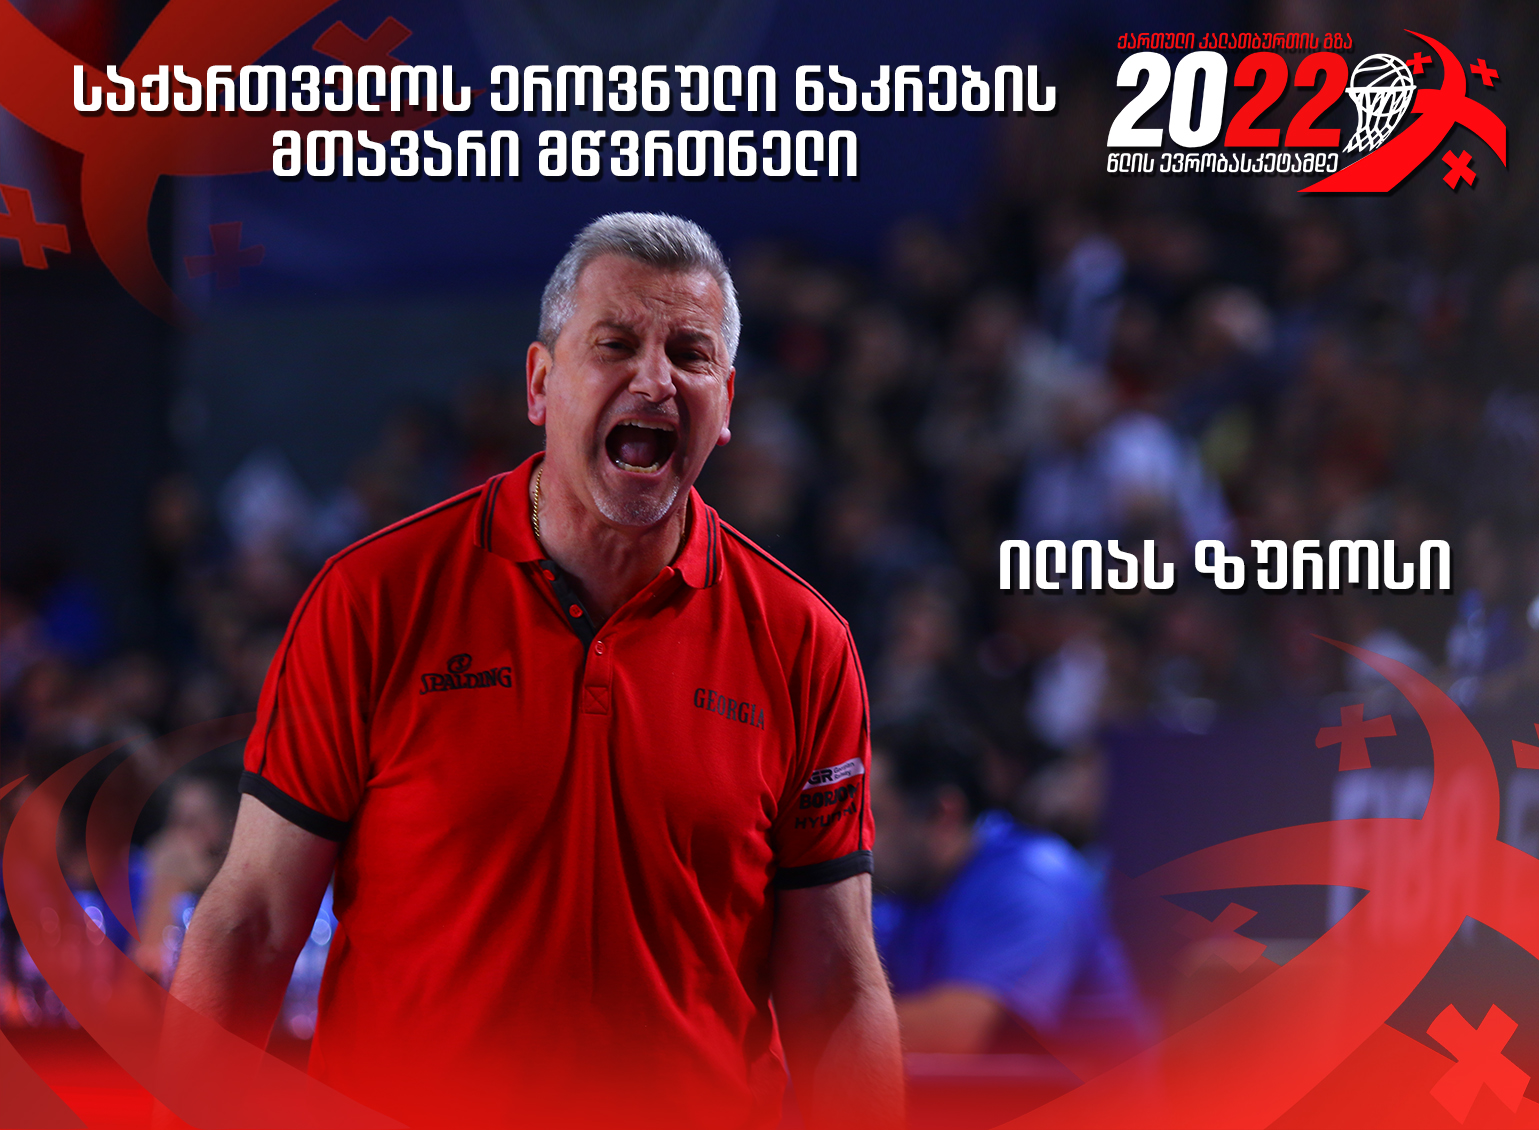 The Road to Eurobasket - Ilias Zouros and the coaching staff of the national team